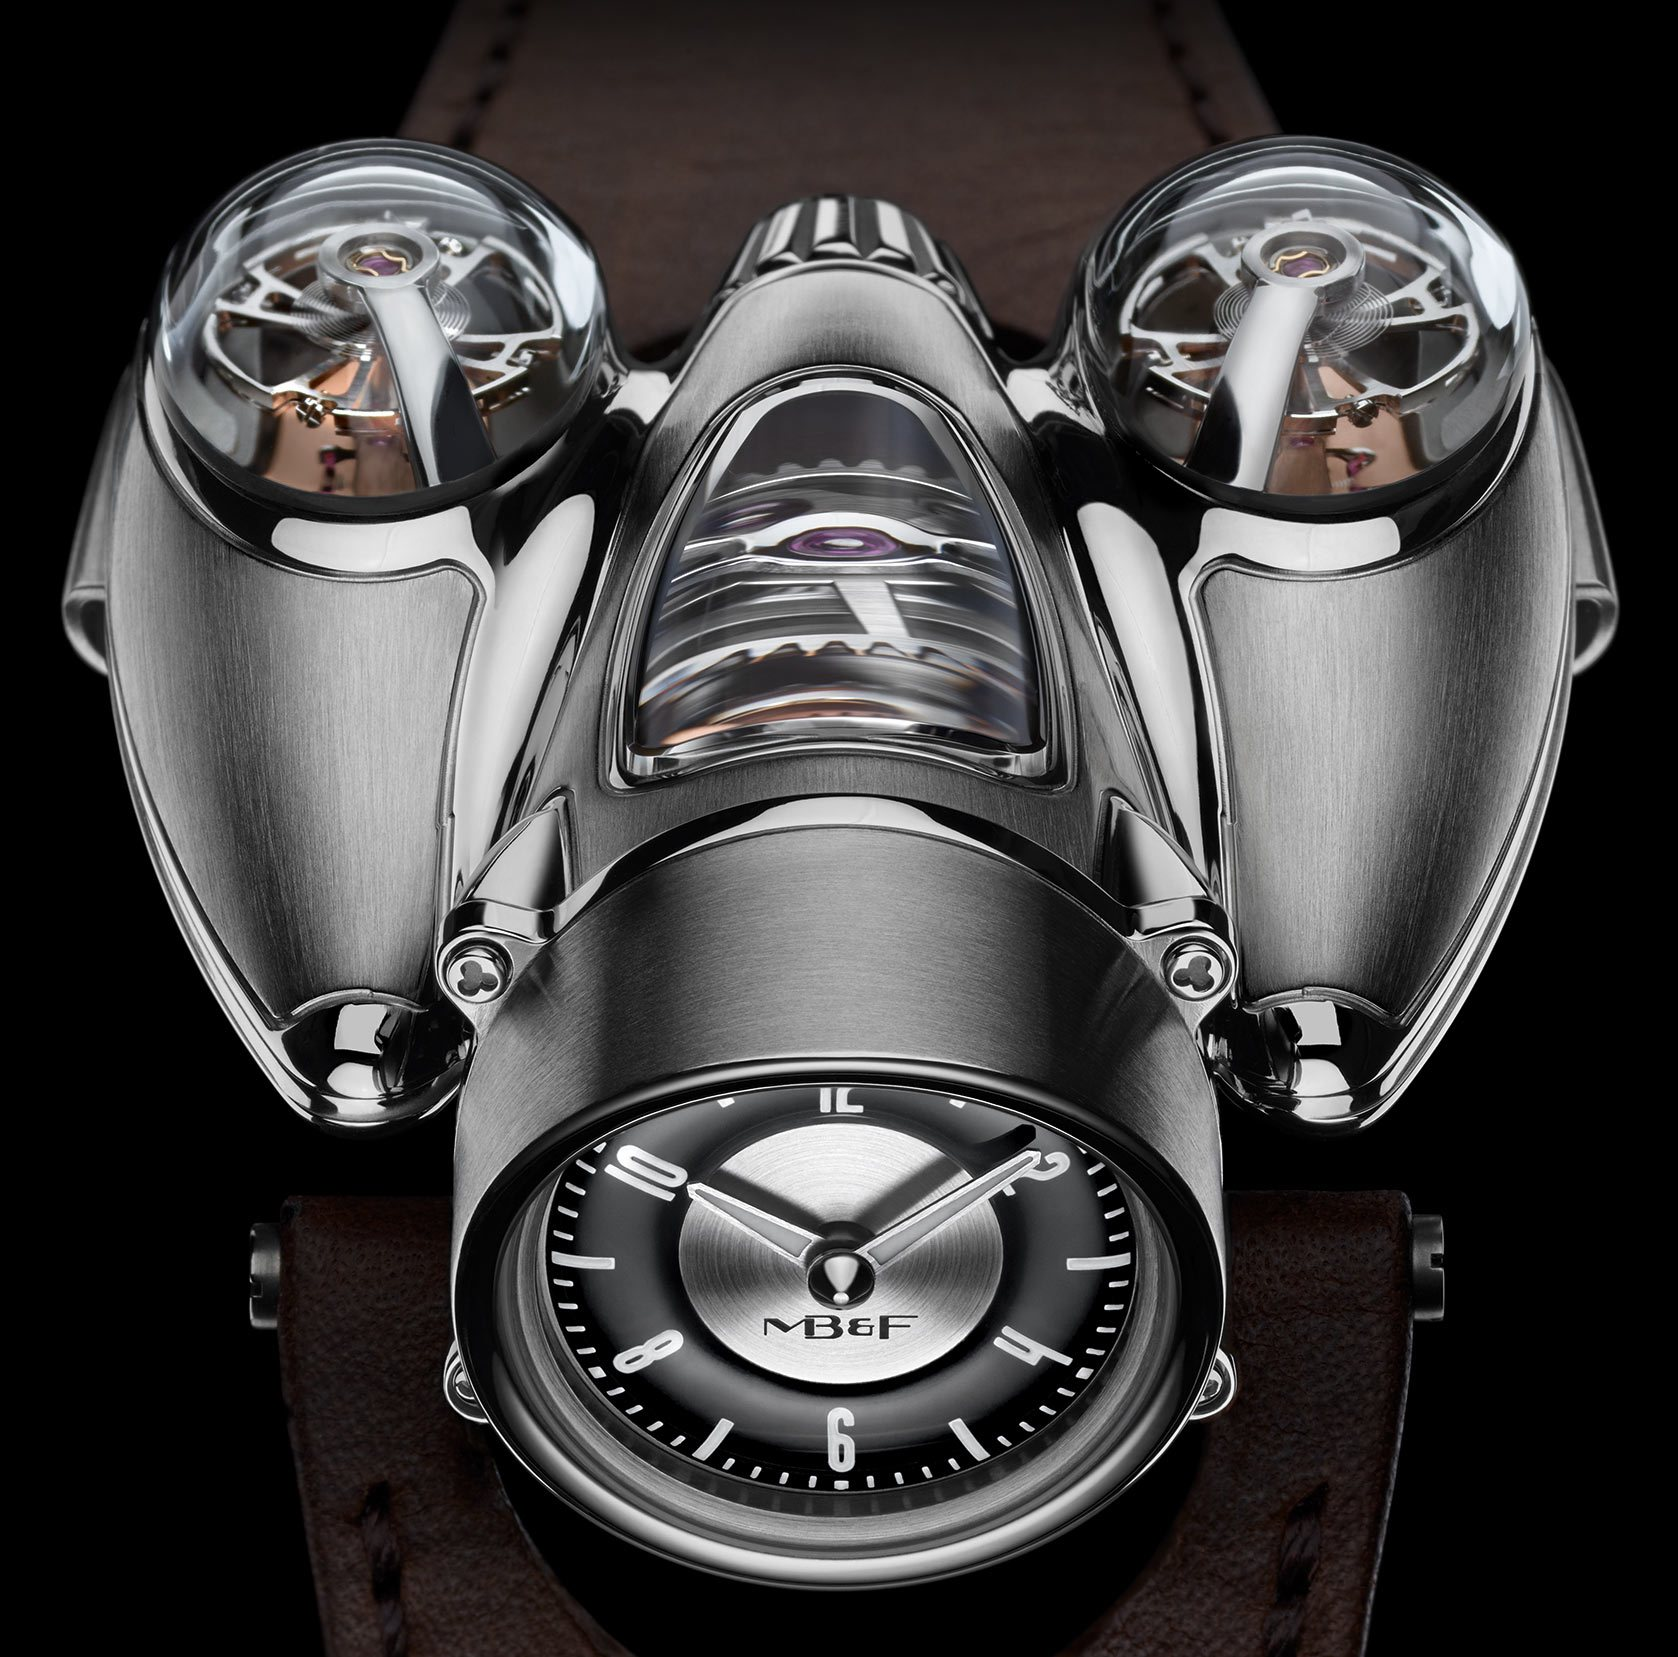 mbf-horological-machine-no-9-hm9-flow-air-road-ablogtowatch-5.jpg